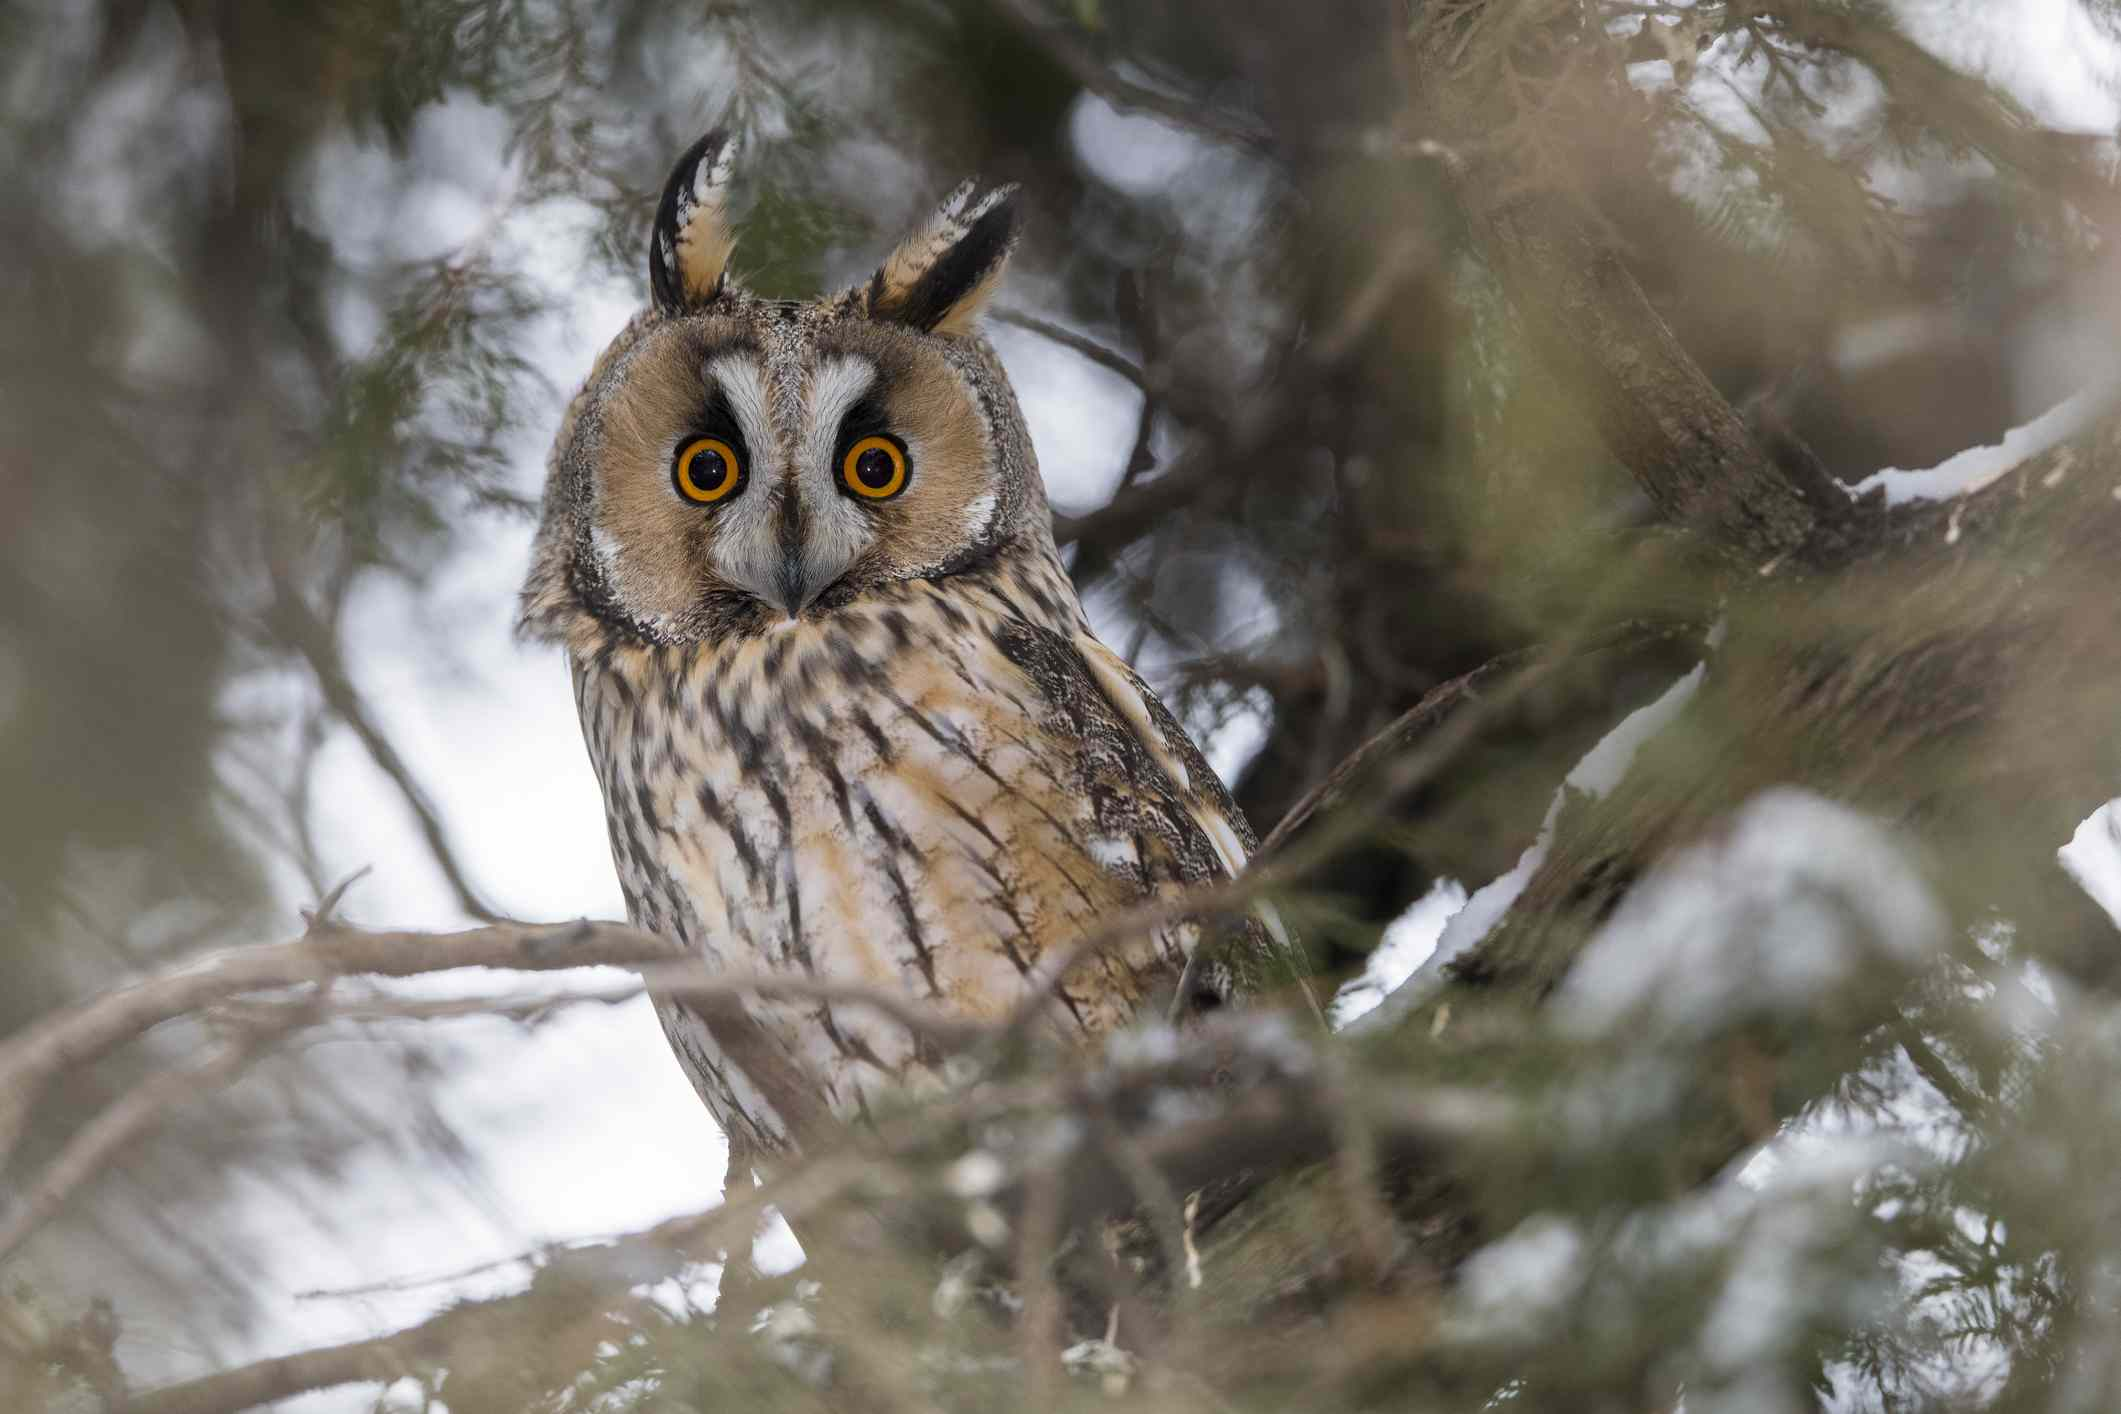 long-eared owl viewed through tree branches with ears slightly askew